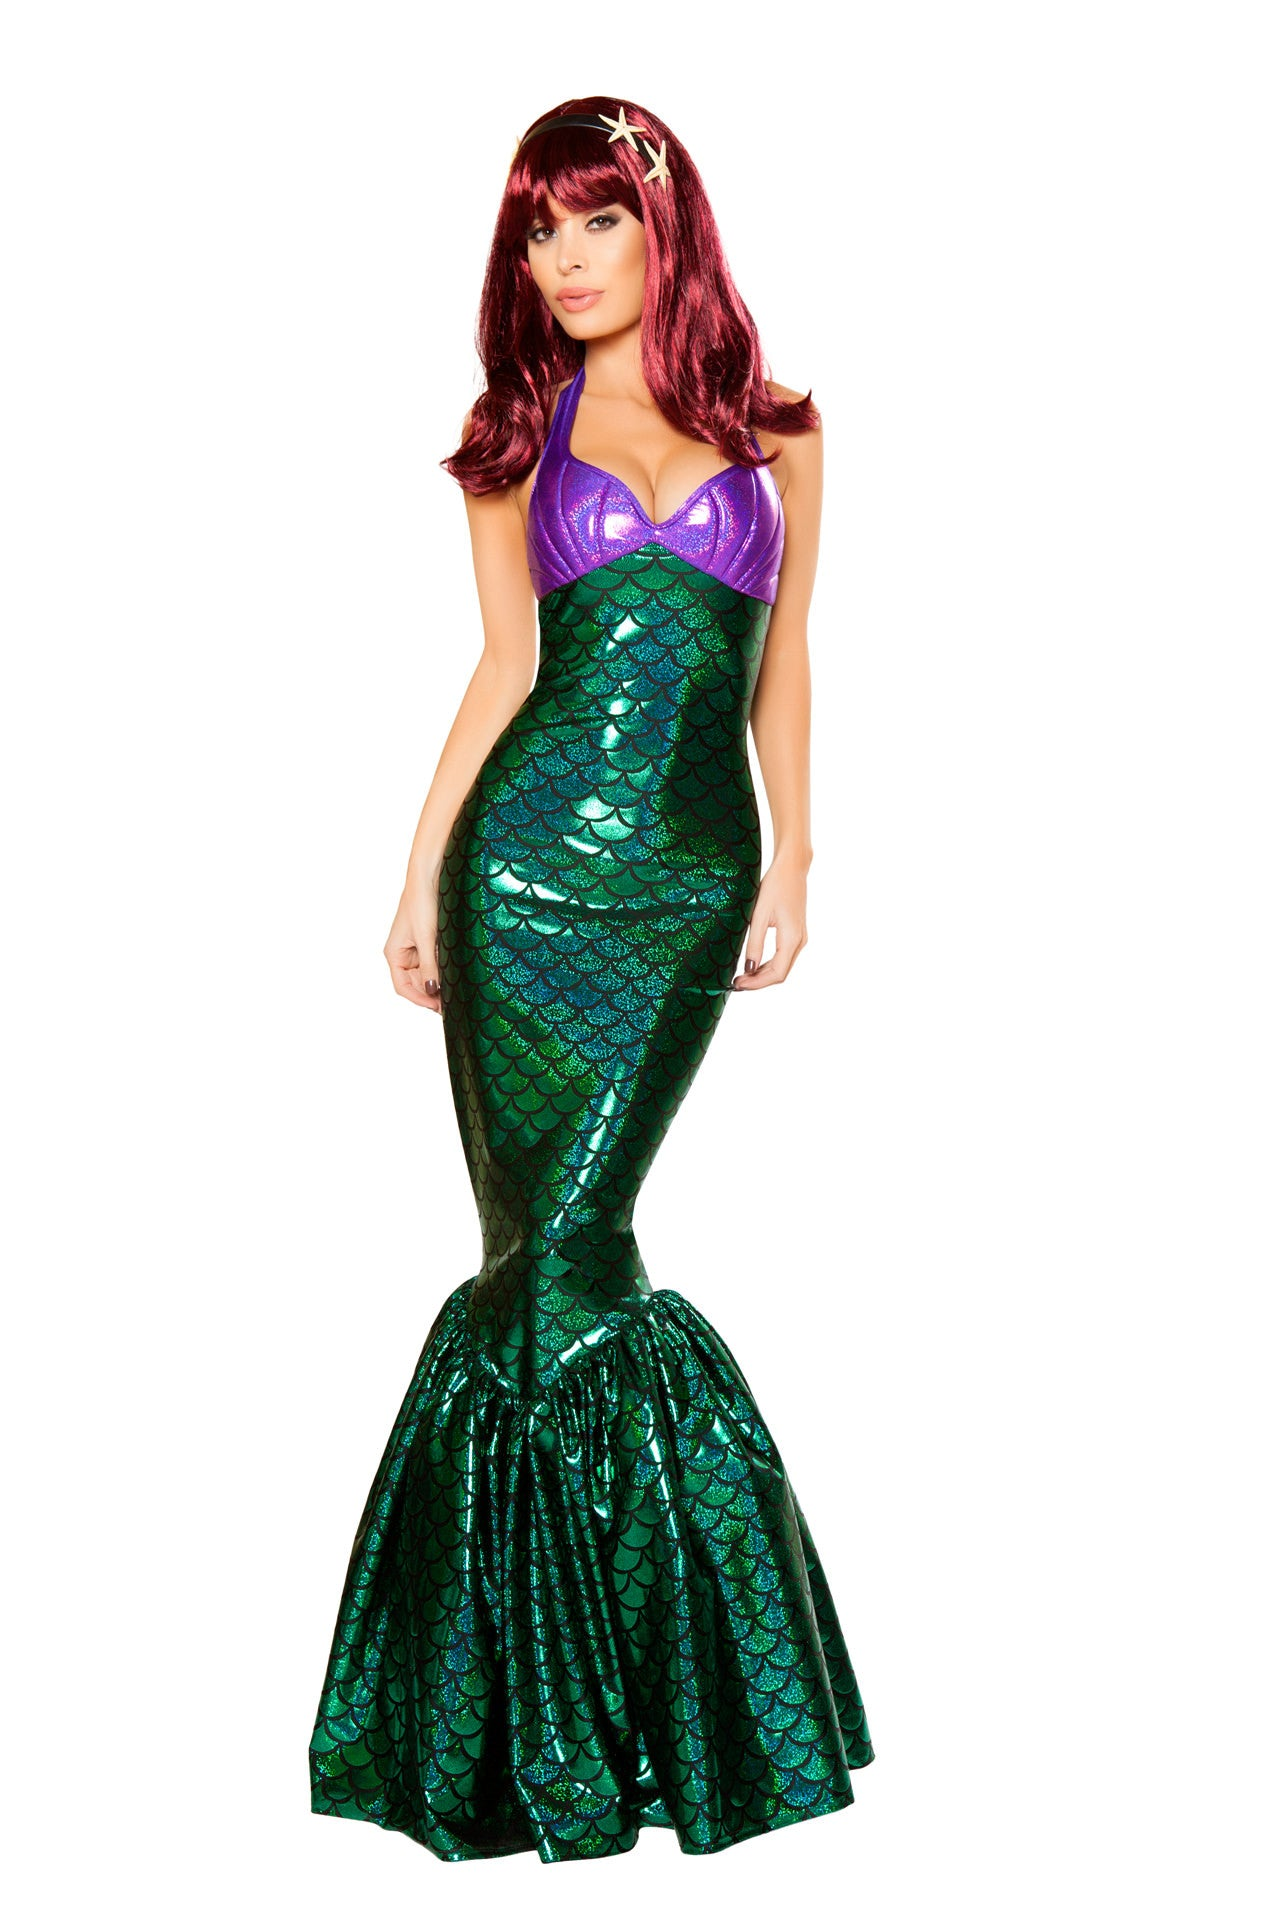 10076 - 1pc Mermaid Temptress